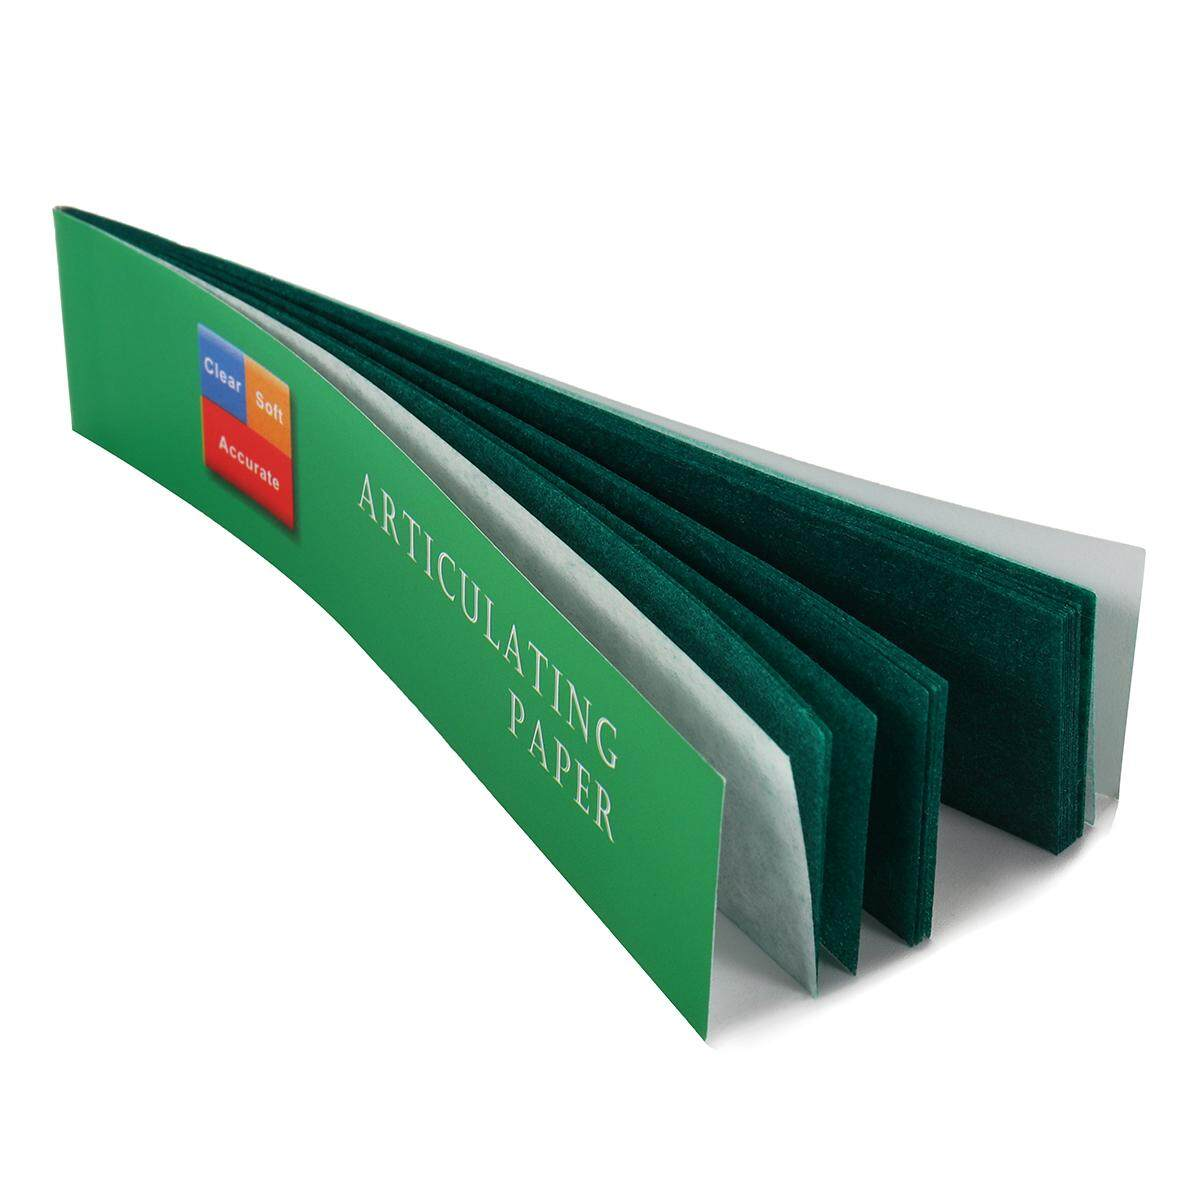 ... 200 Sheet/Box Dental Articulating Paper Thick Green Strips Oral Care Material Dentist Lab Products ...